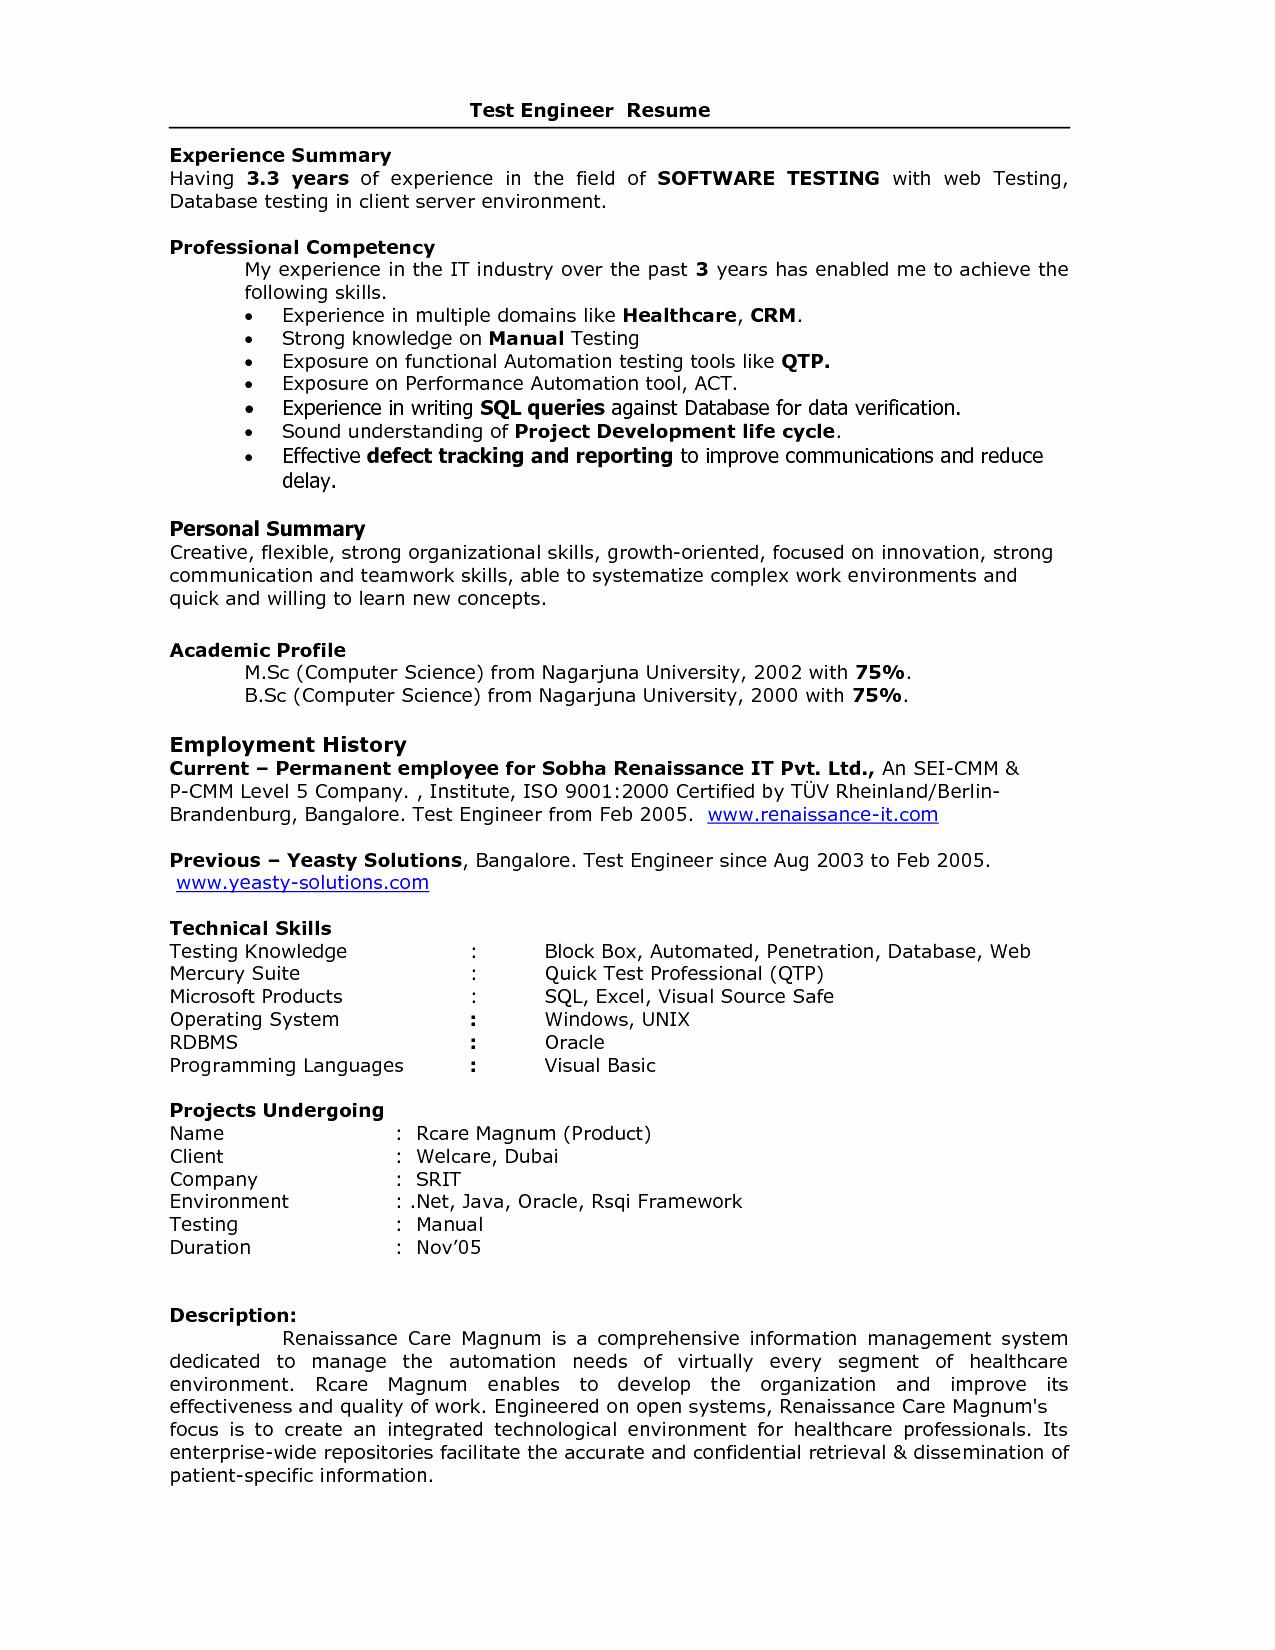 Automation Testing Resume for 5 Years Experience - 43 Awesome Resume format for software Testing Fresher Resume